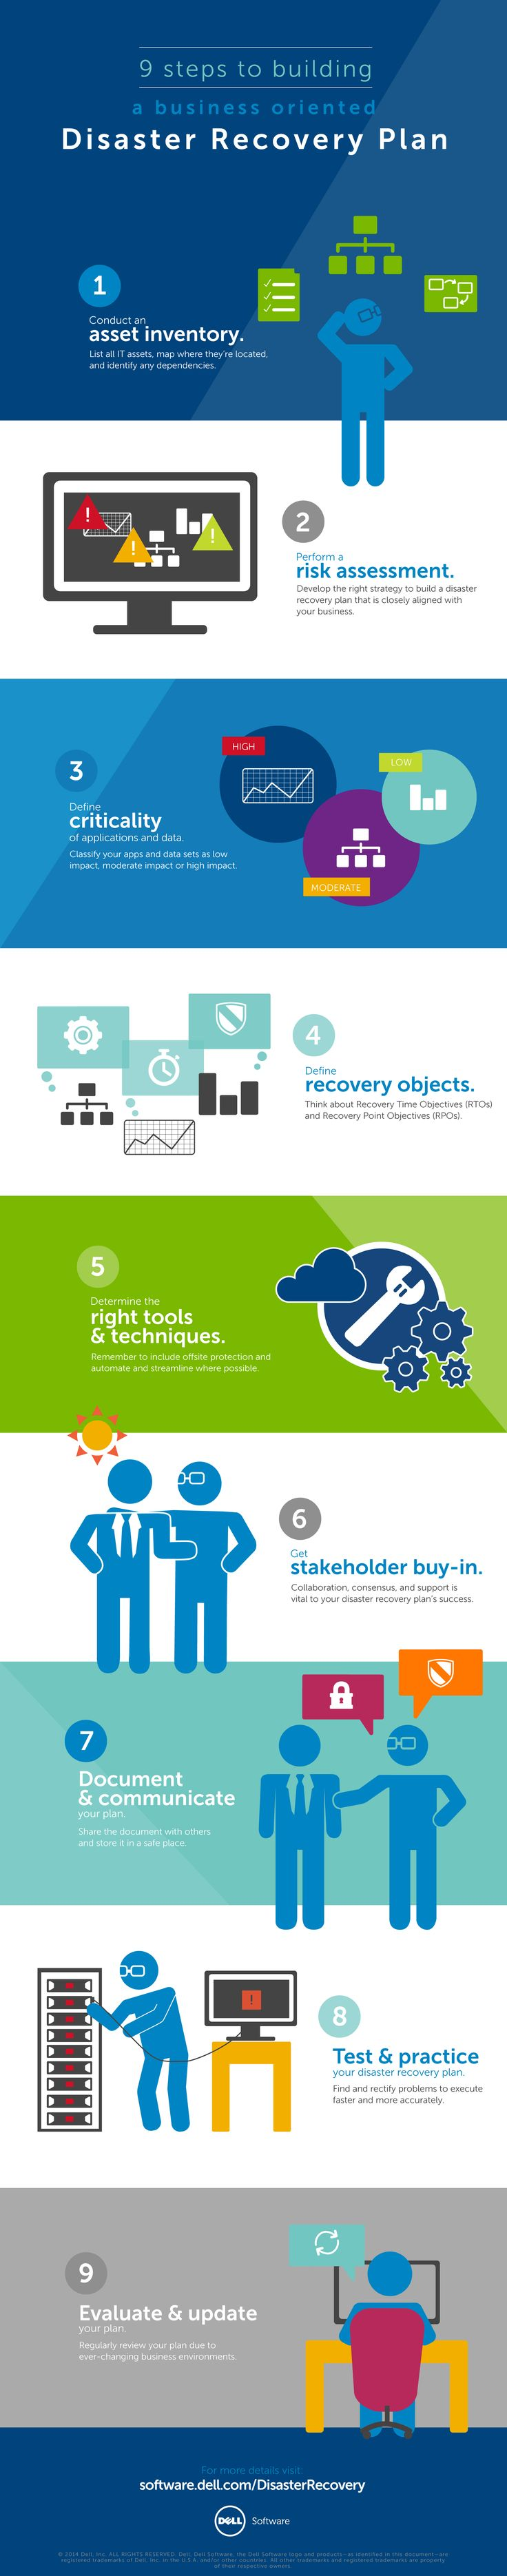 9 Steps to Building a Business-Oriented Disaster Recovery Plan https://software.dell.com/whitepaper/think-like-a-business-leader-the-it-professionals-guide-to-disaster-re830305